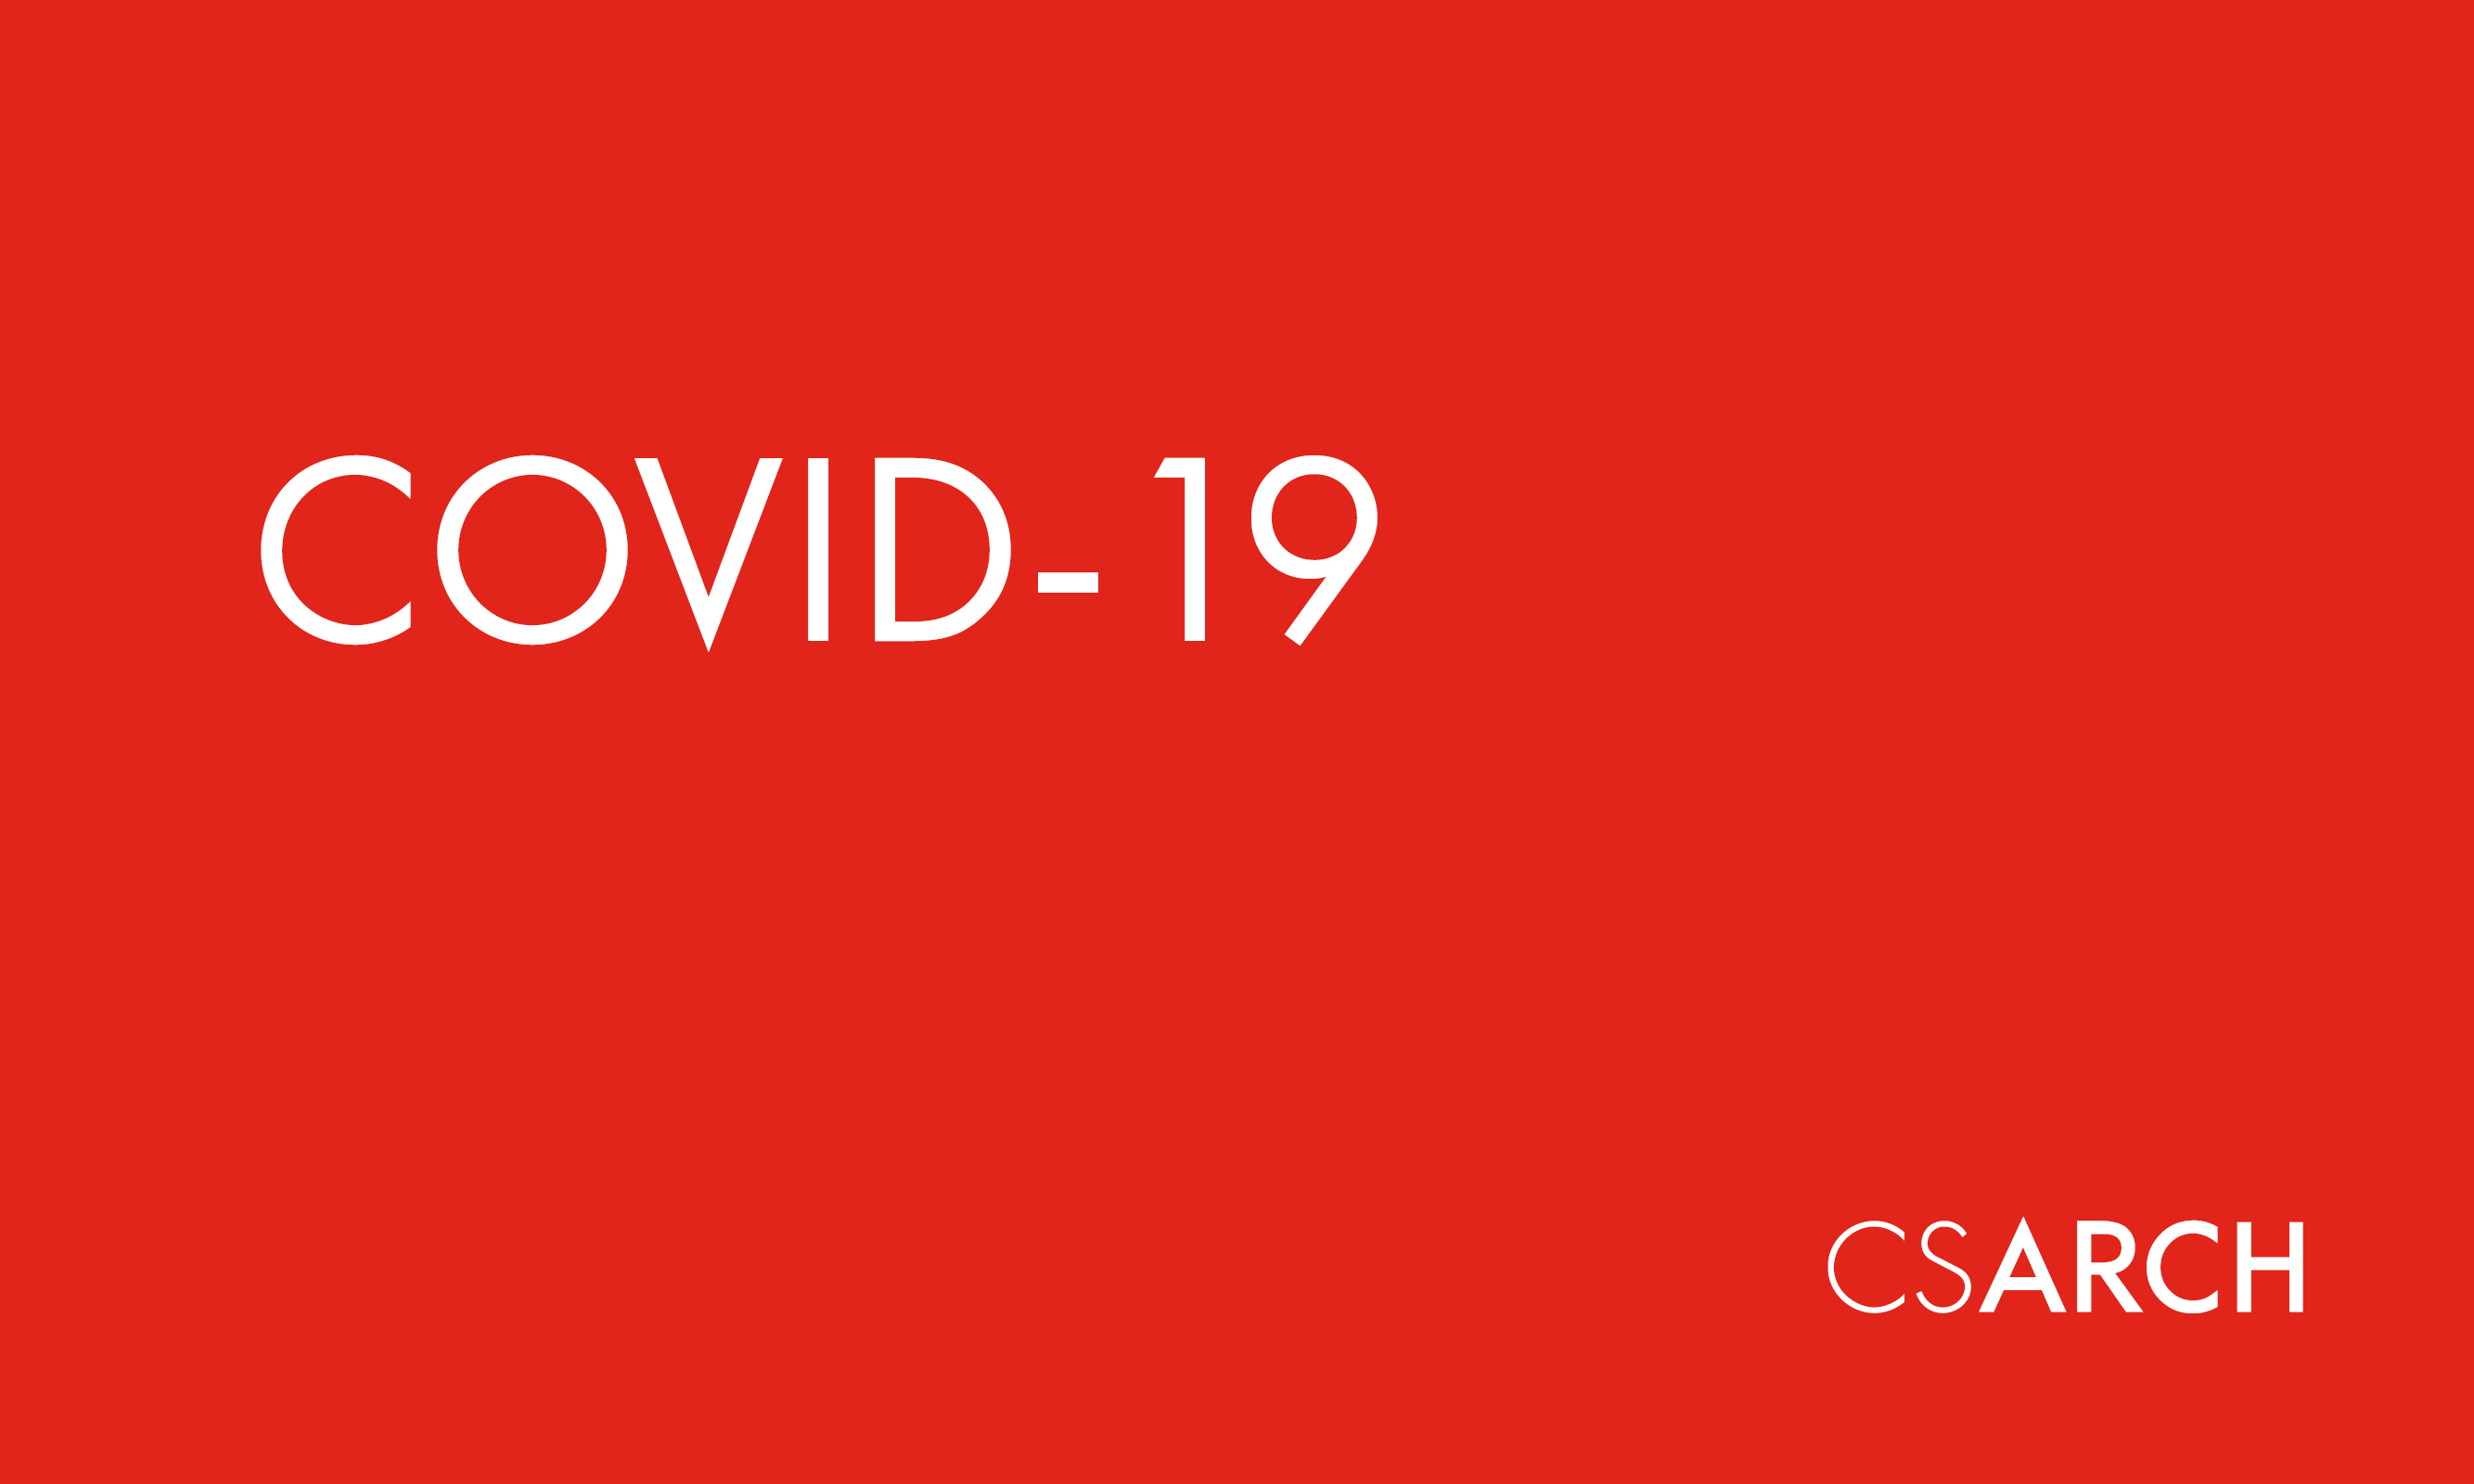 A Message About COVID-19